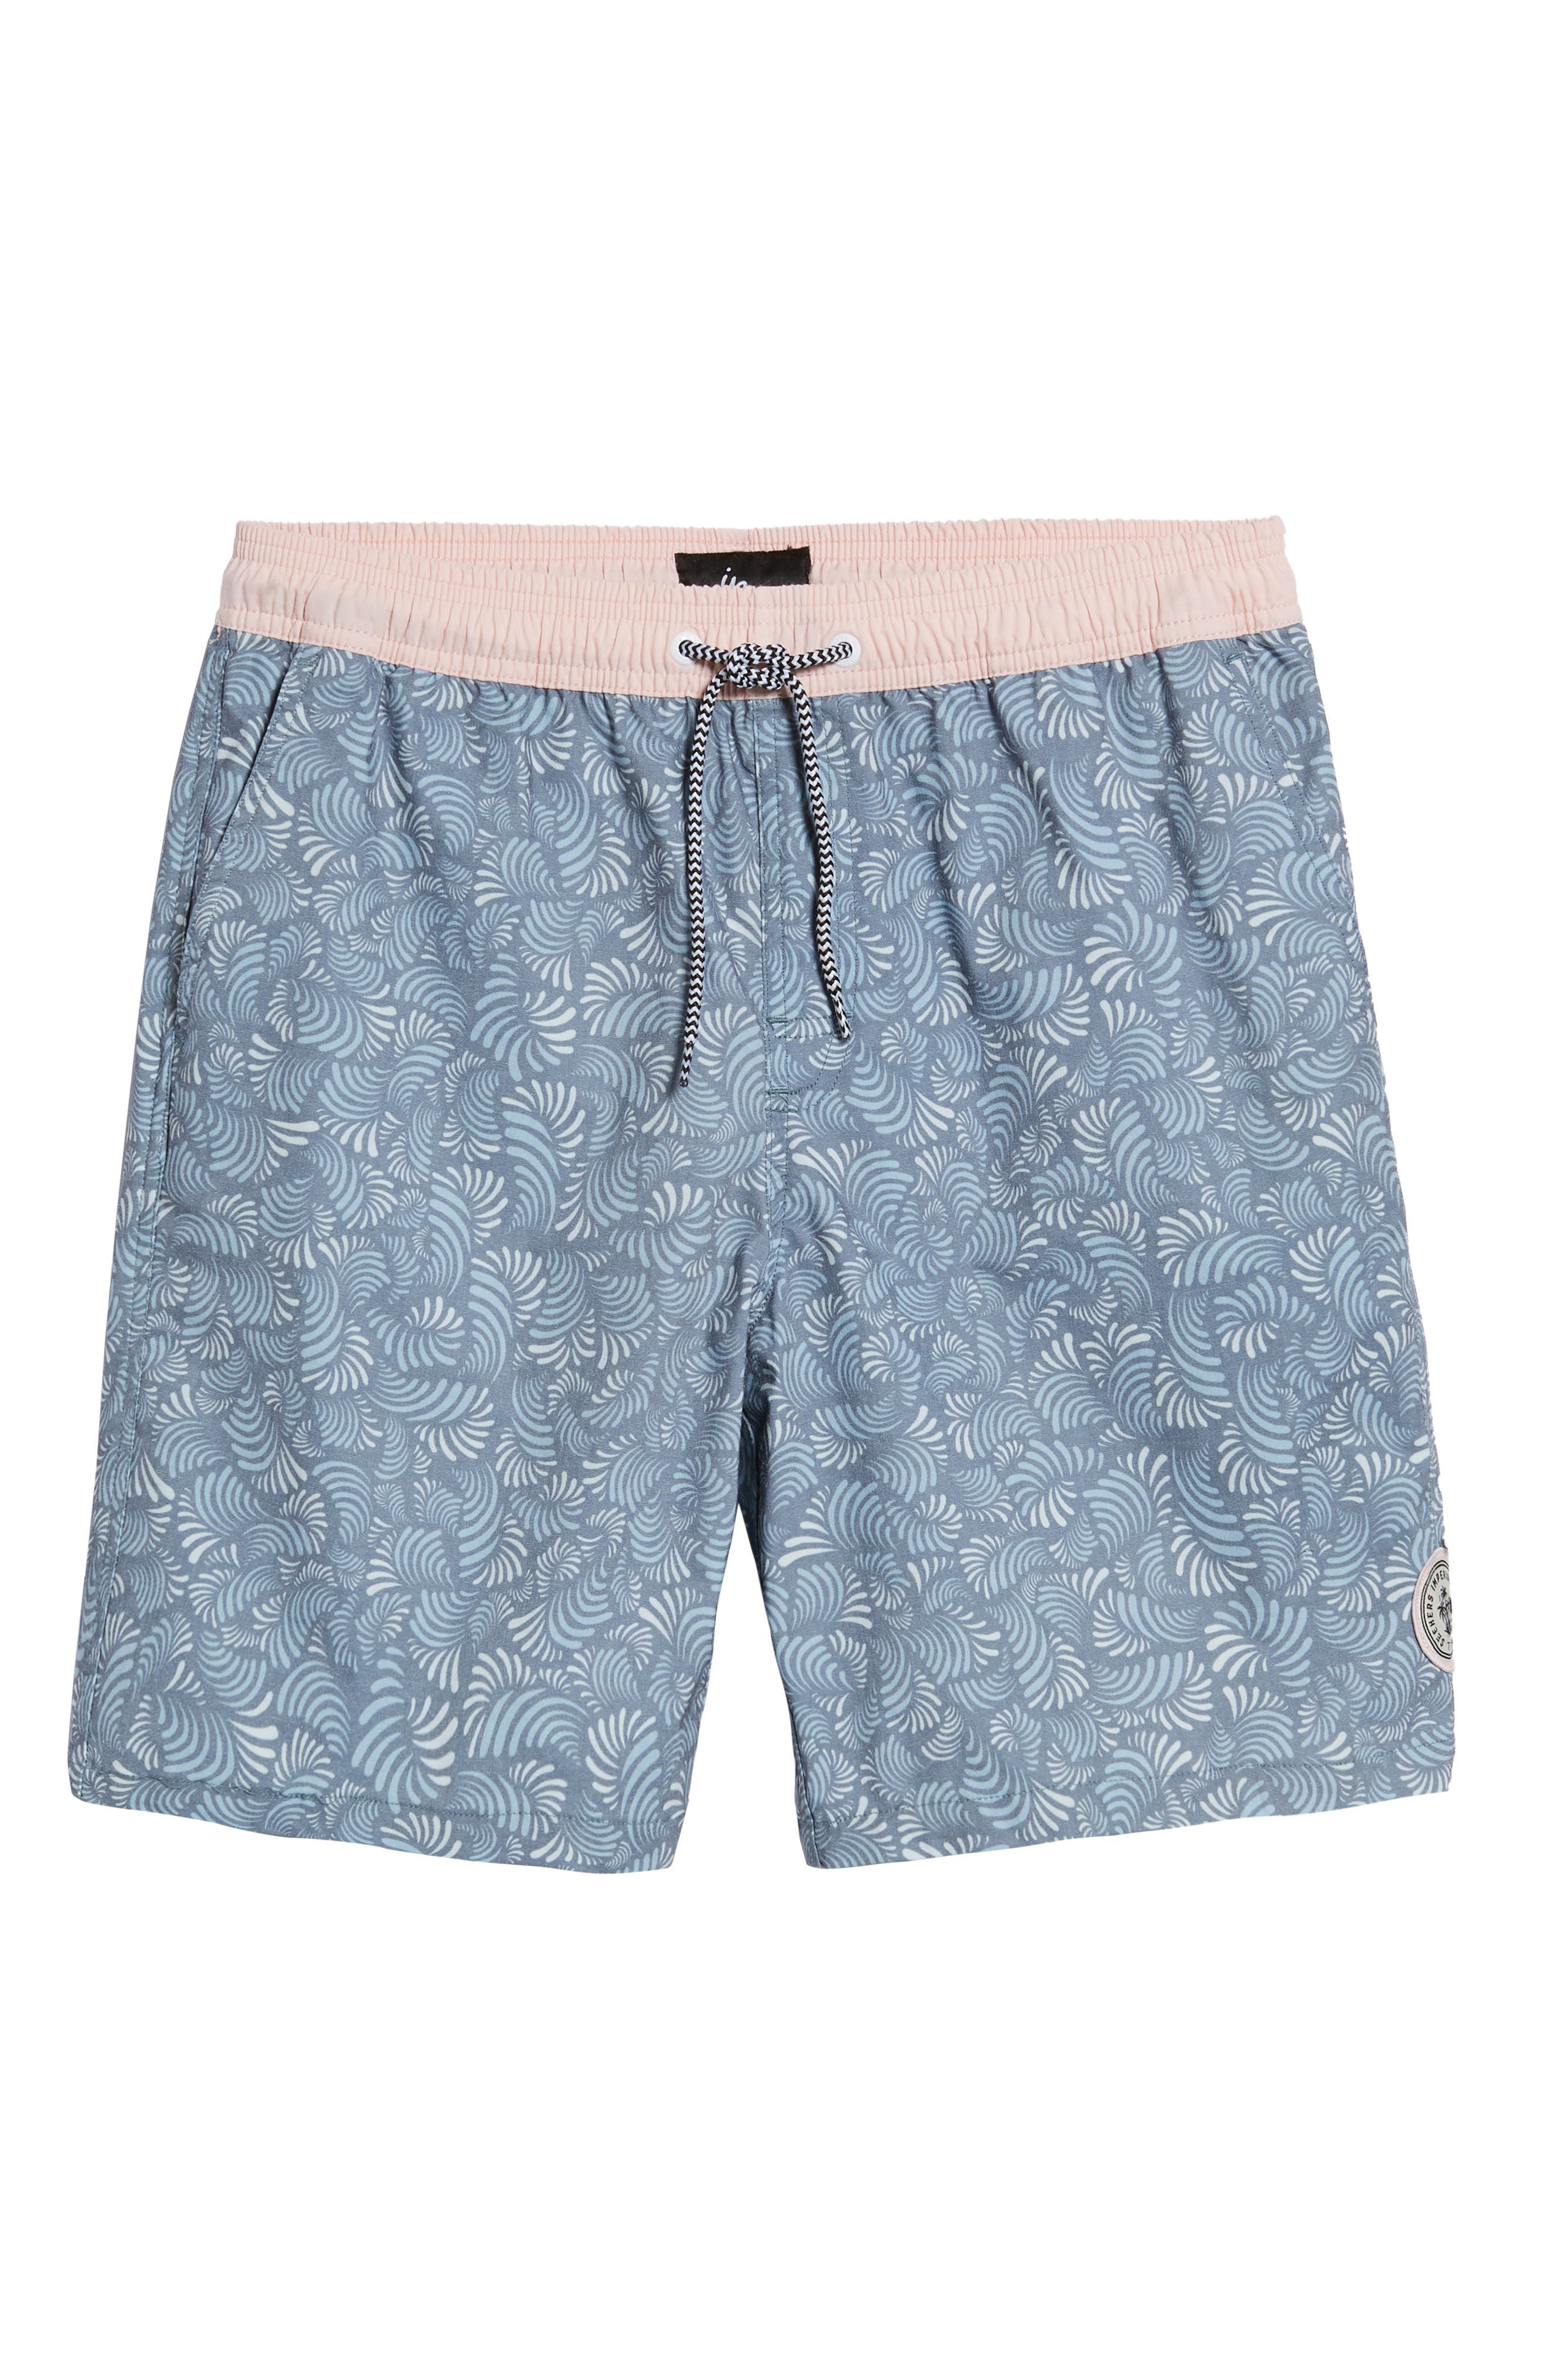 Hayworth Mix Board Shorts,                             Alternate thumbnail 6, color,                             Light Pink/ Blue